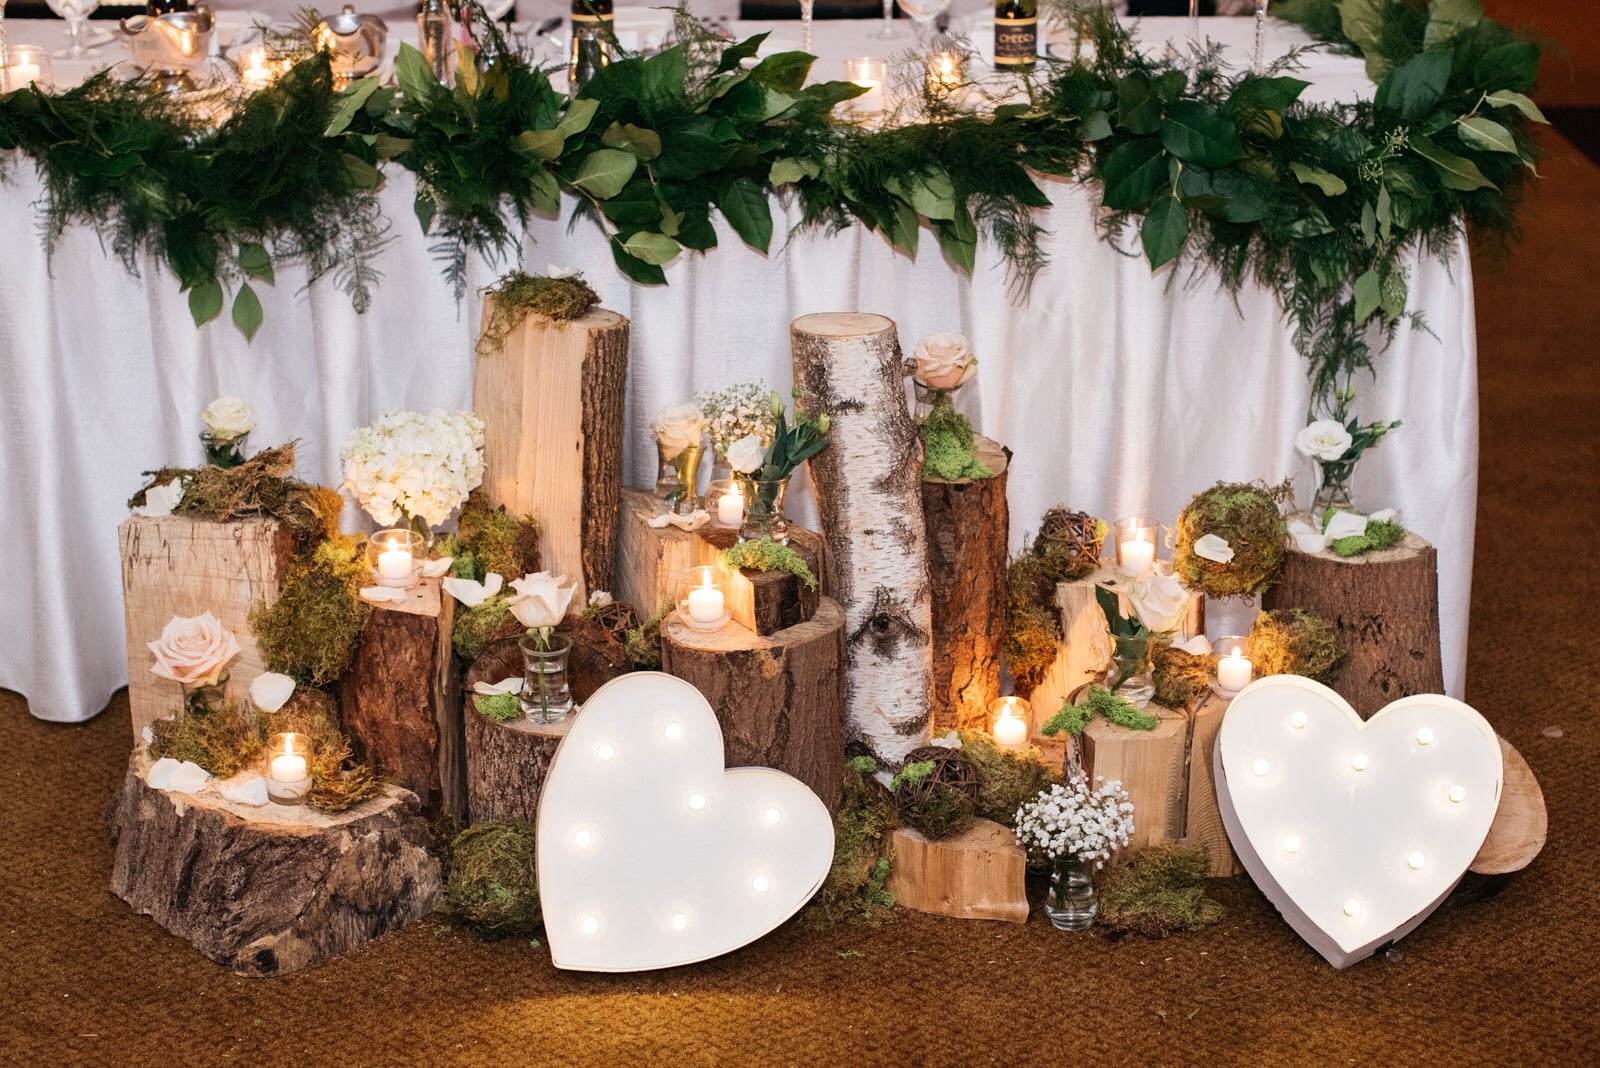 hilton_garden_inn_southpointe_pittsburgh_weddings_76.jpg